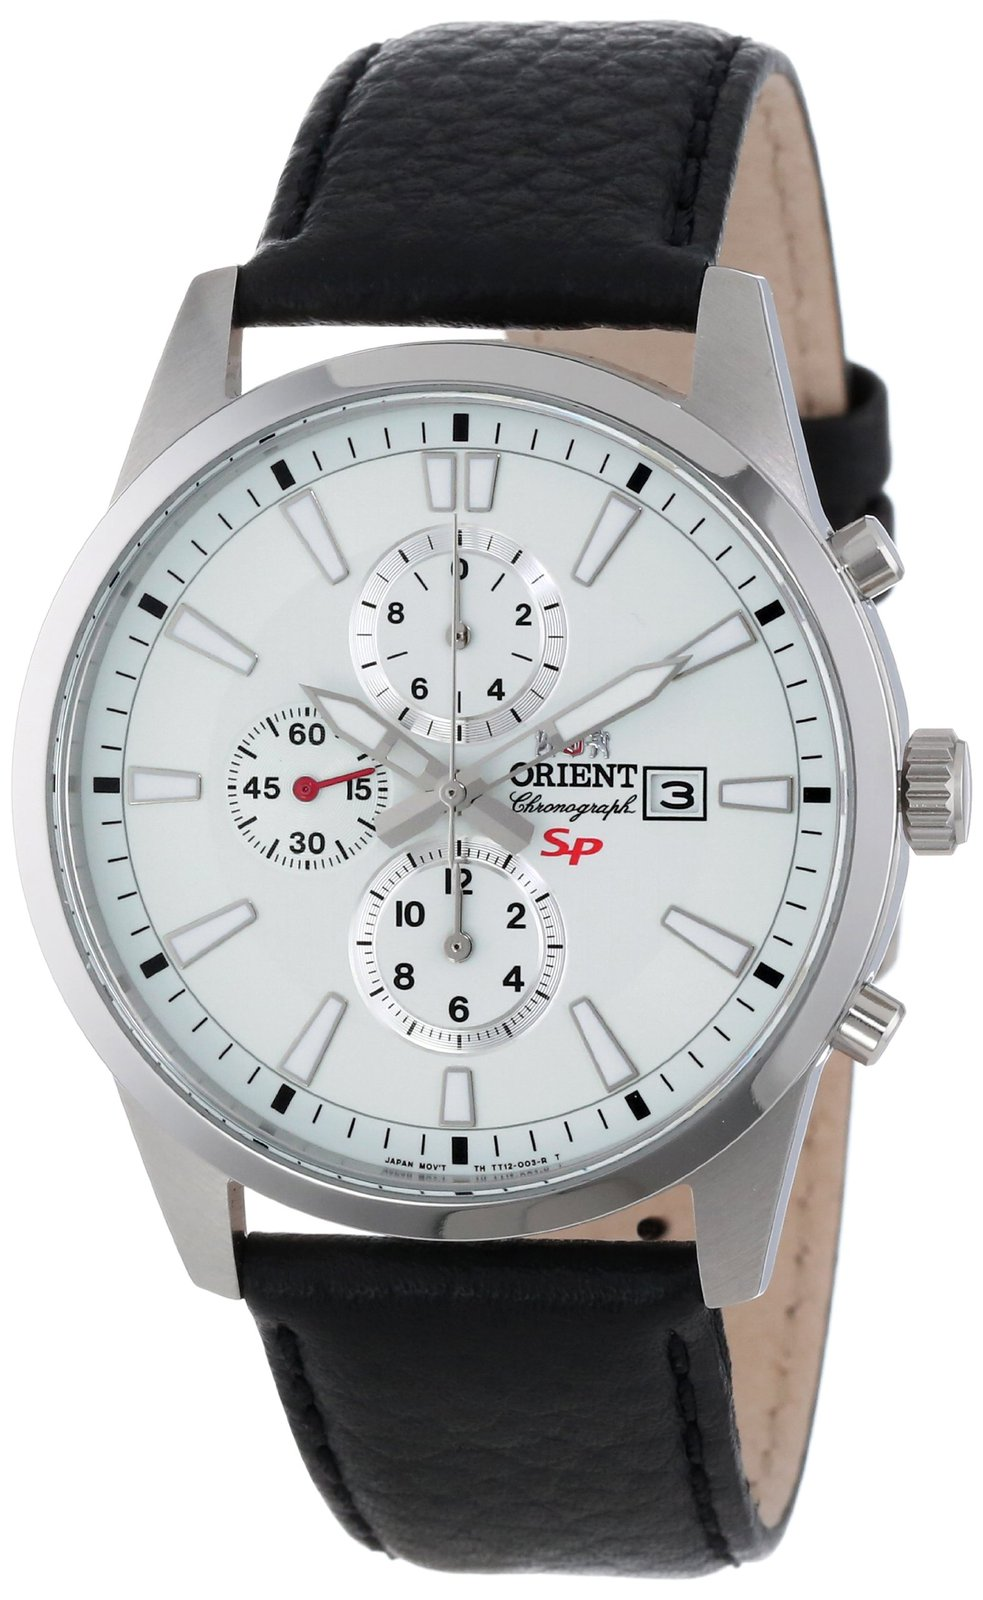 Primary image for Orient Men's FTT12005W0 SP Chronograph Movement Watch